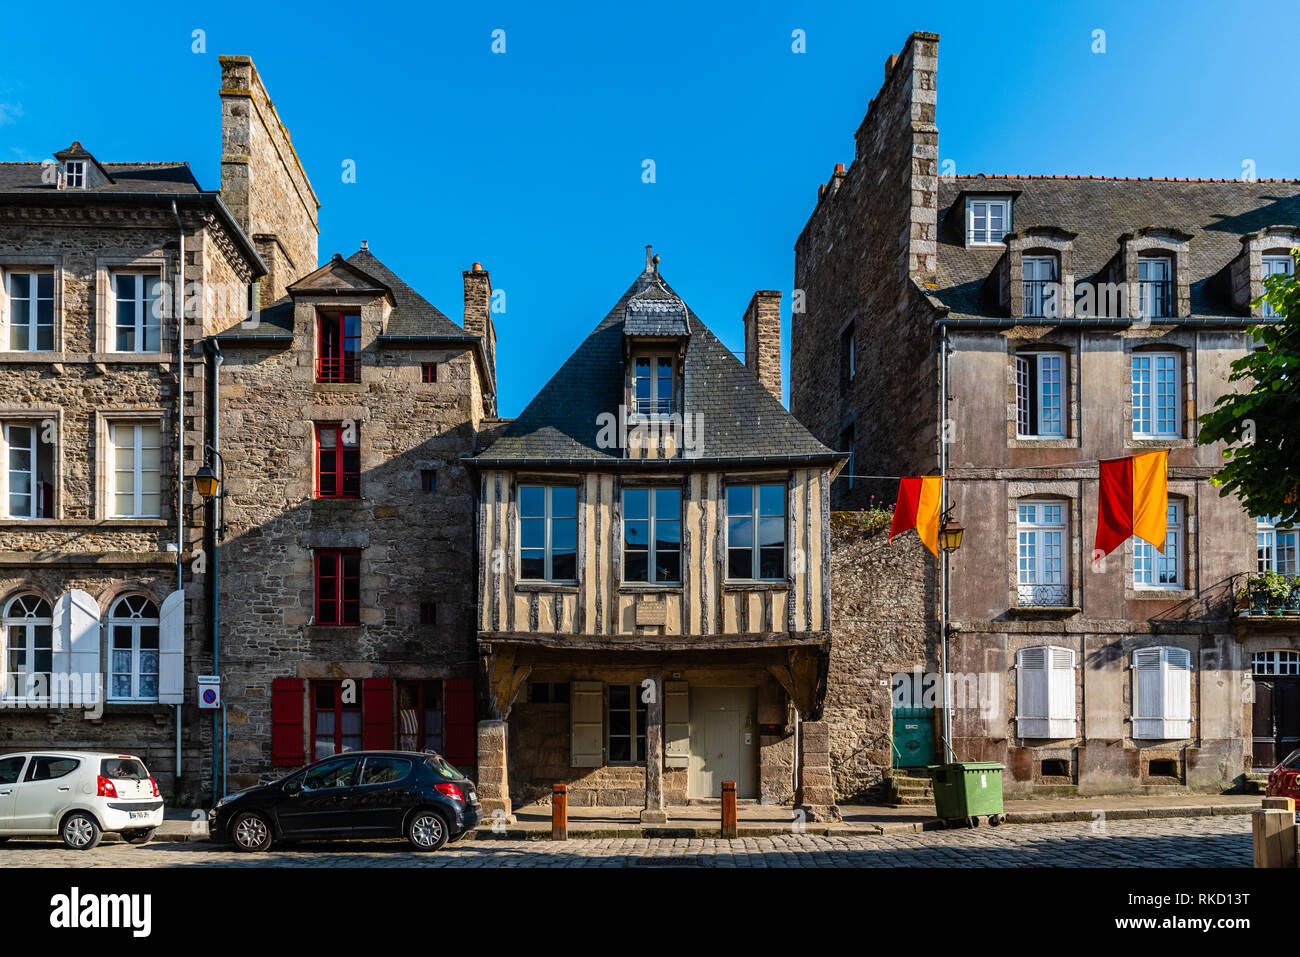 Dinan, France - July 23, 2018: Picturesque old houses in historic centre of the city. Stock Photo